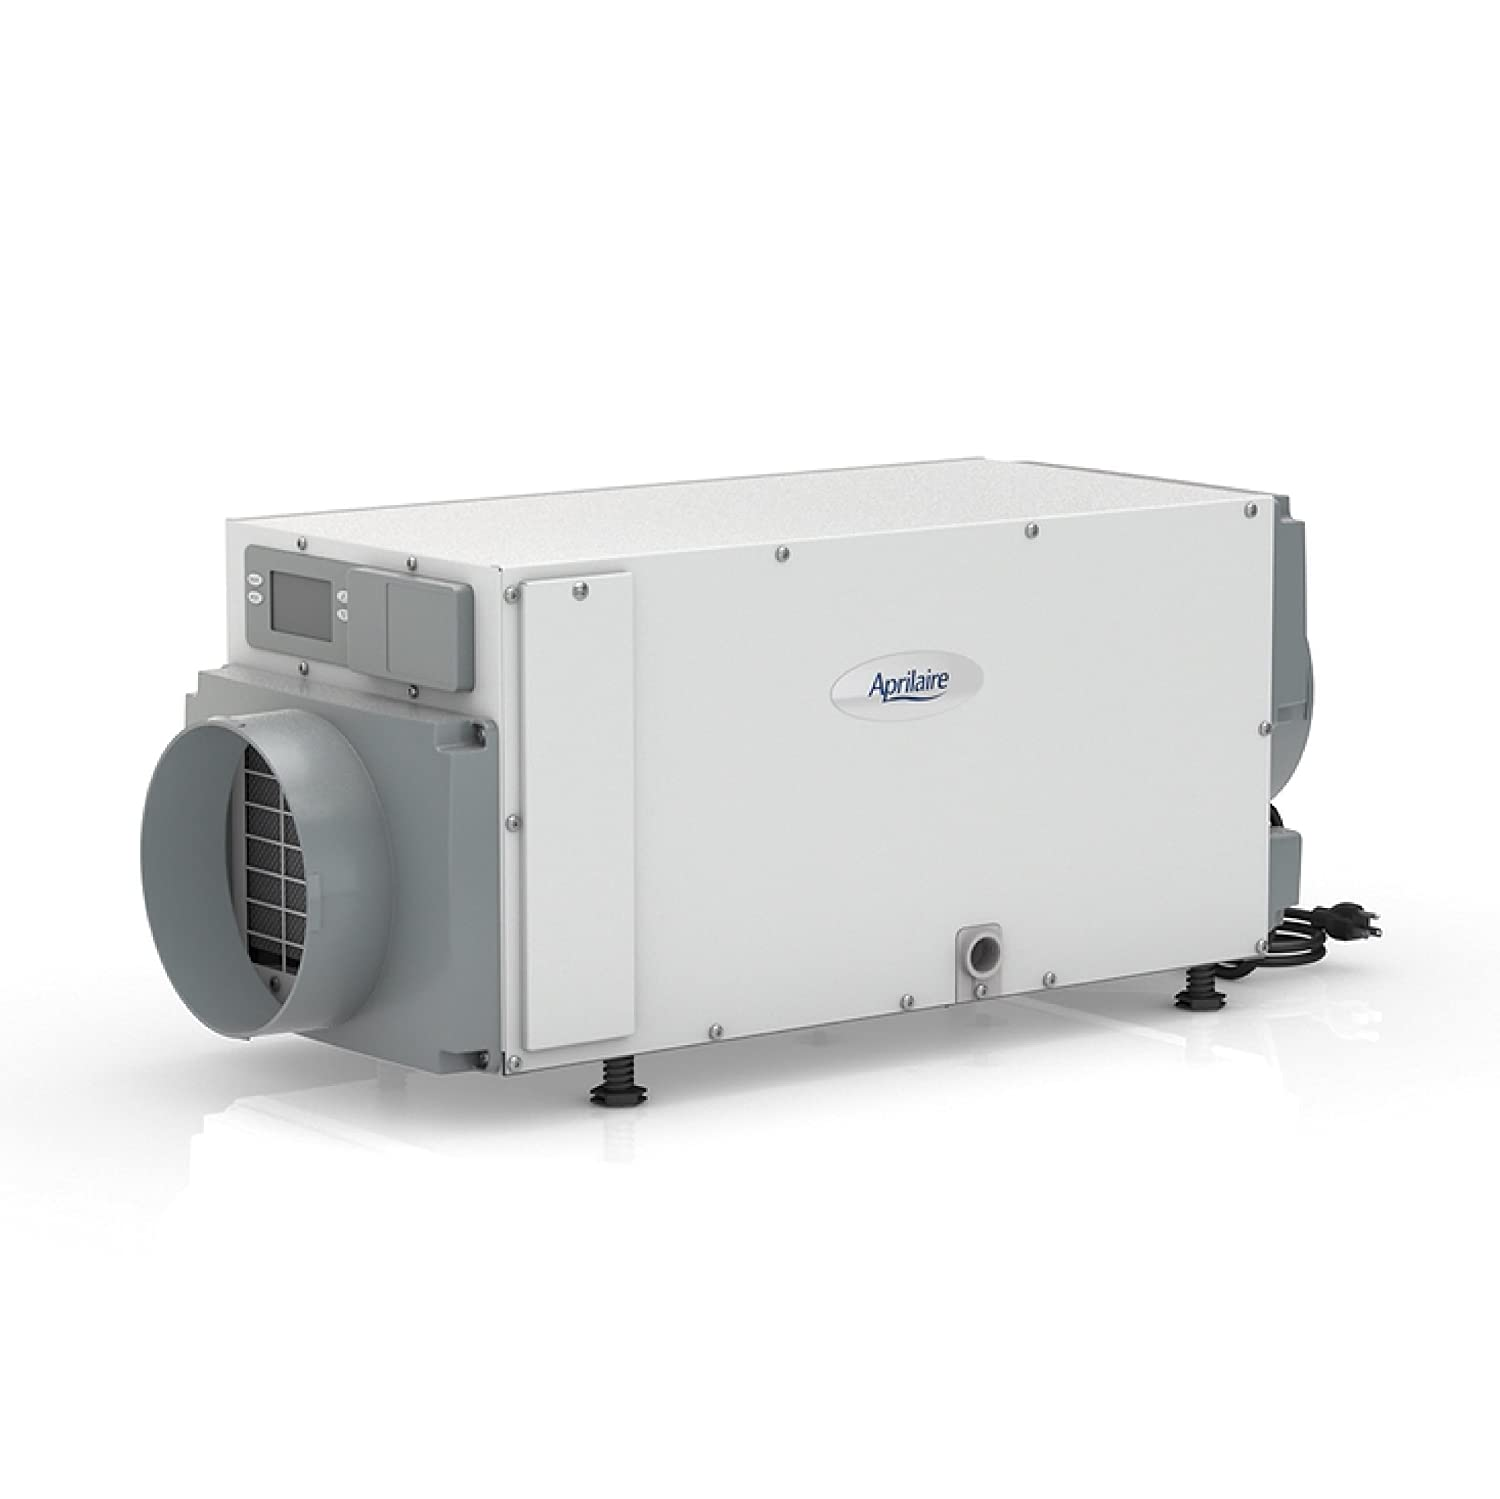 Aprilaire 1820 Crawl Space Pro Dehumidifier